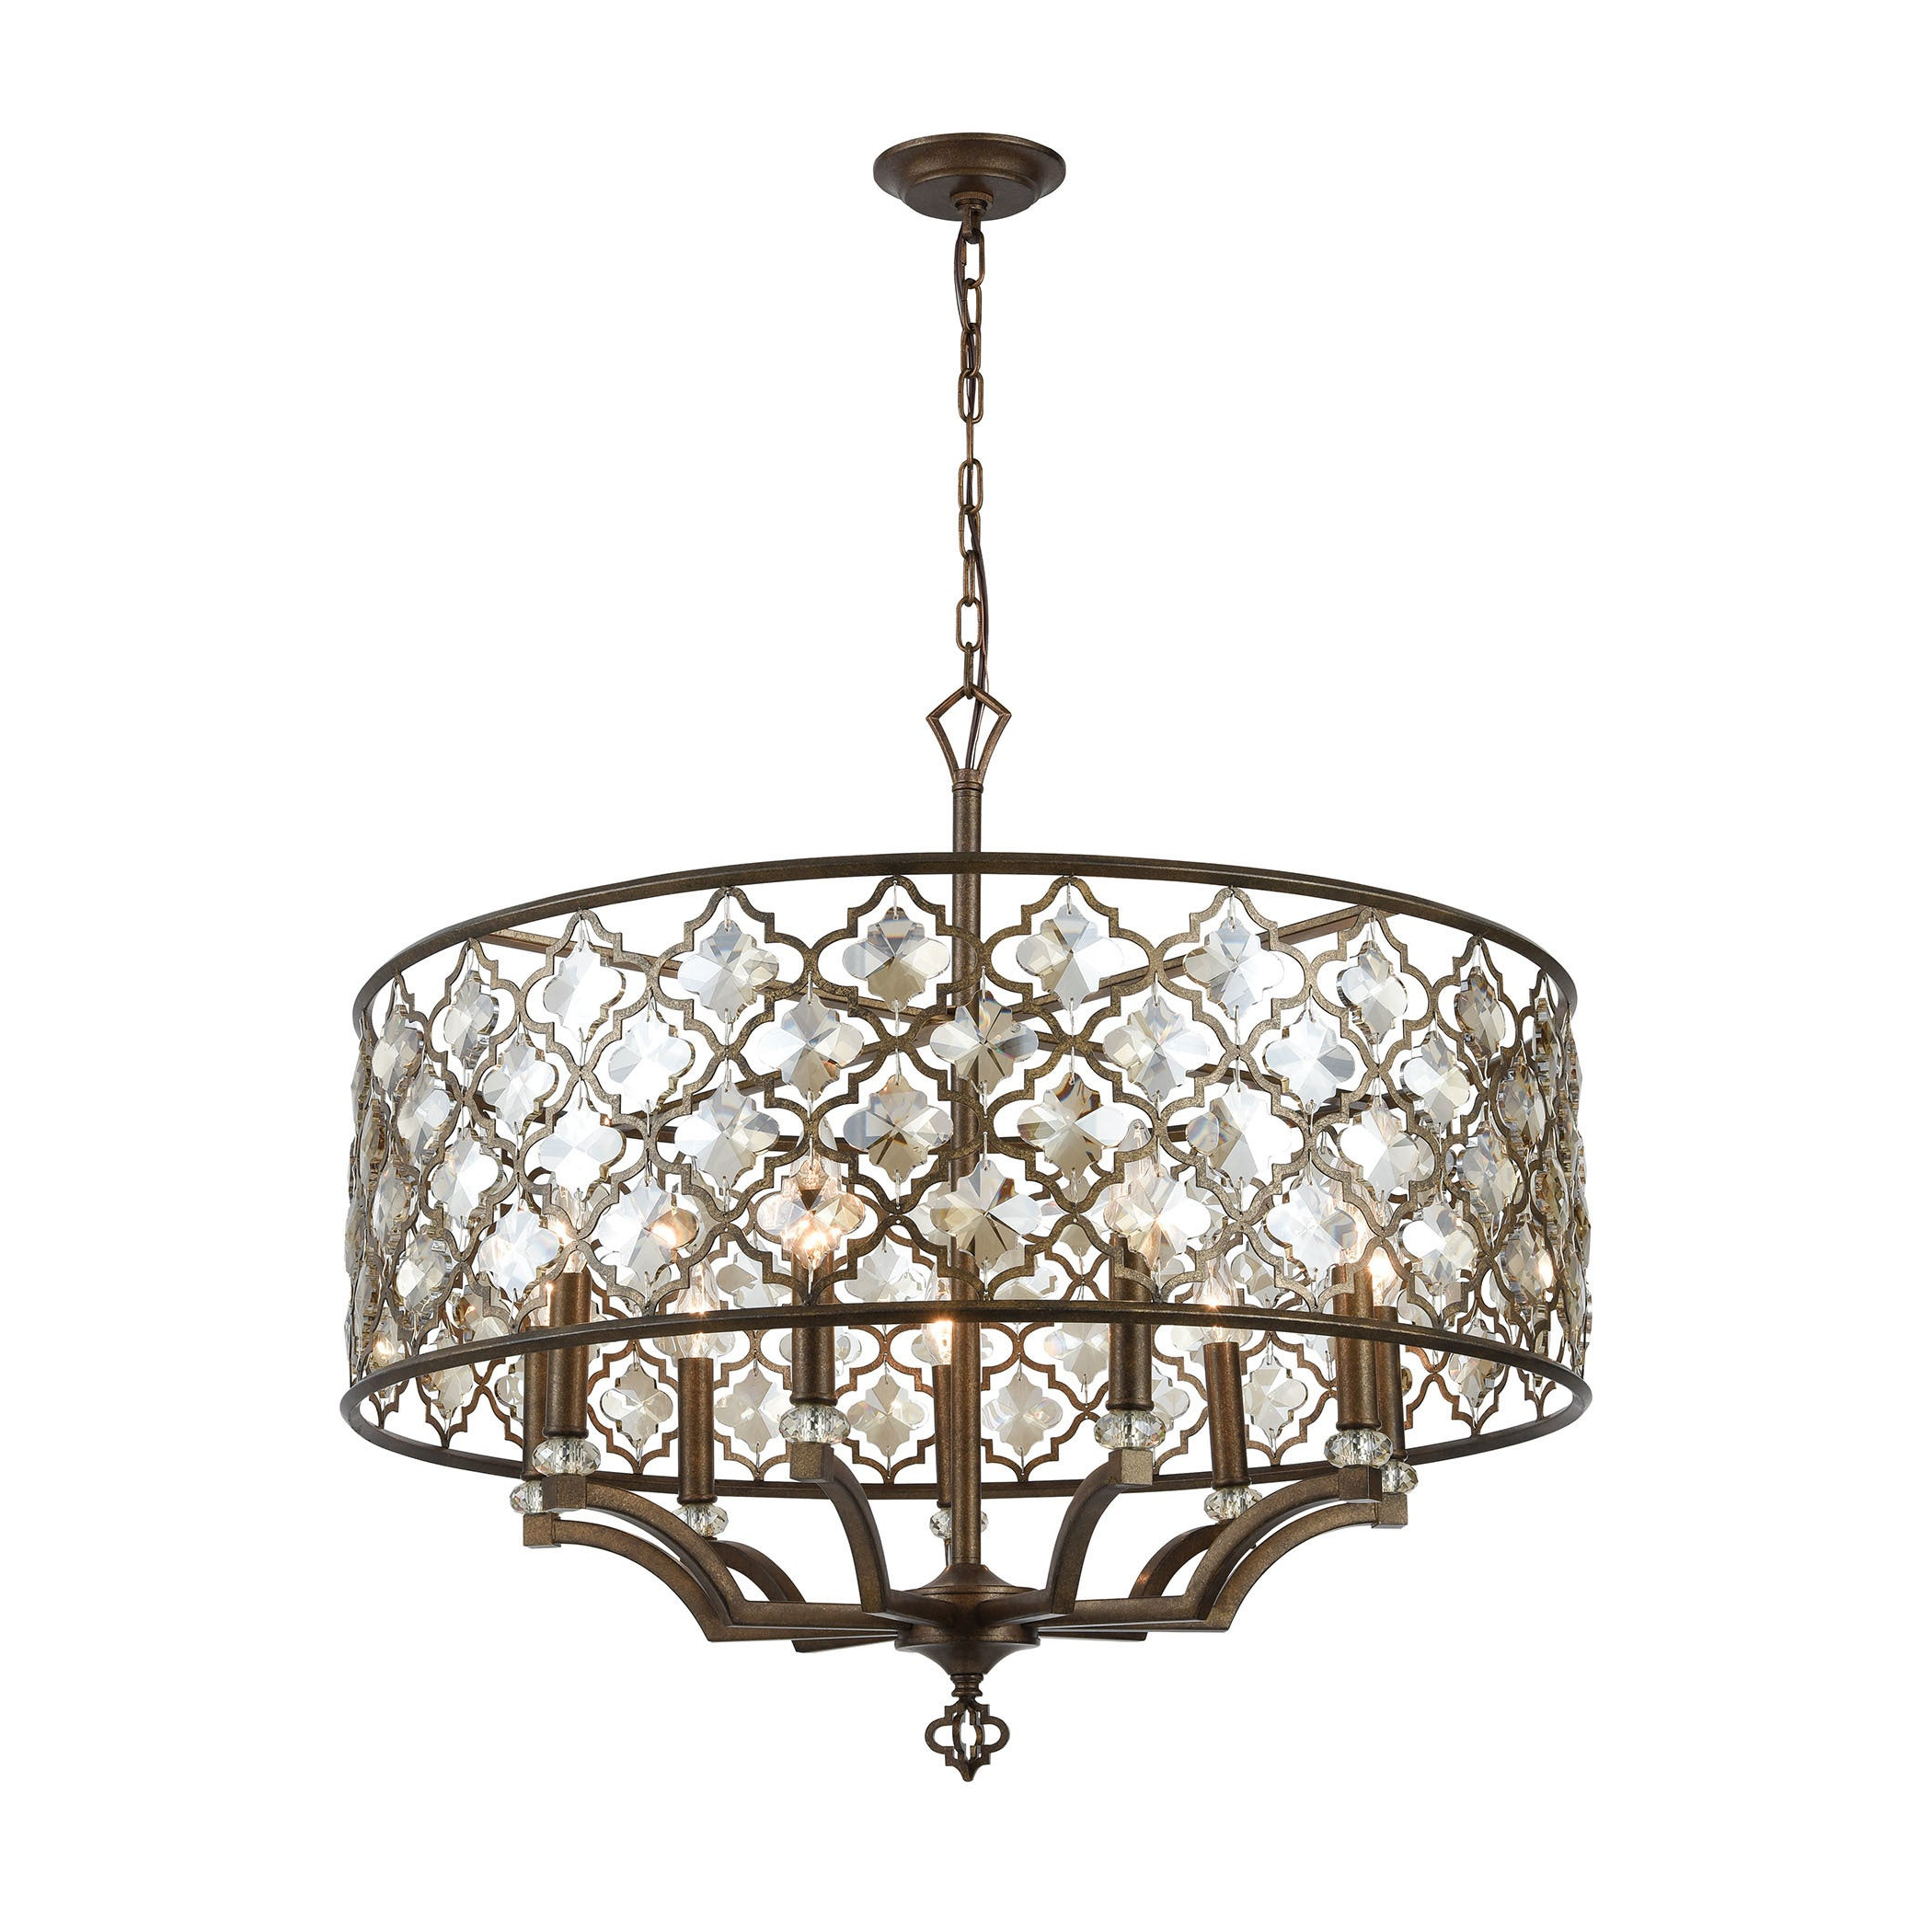 Best And Newest Armande 4 Light Lantern Drum Pendants With Armand 9 Light Pendant, Weathered Bronze (View 7 of 25)